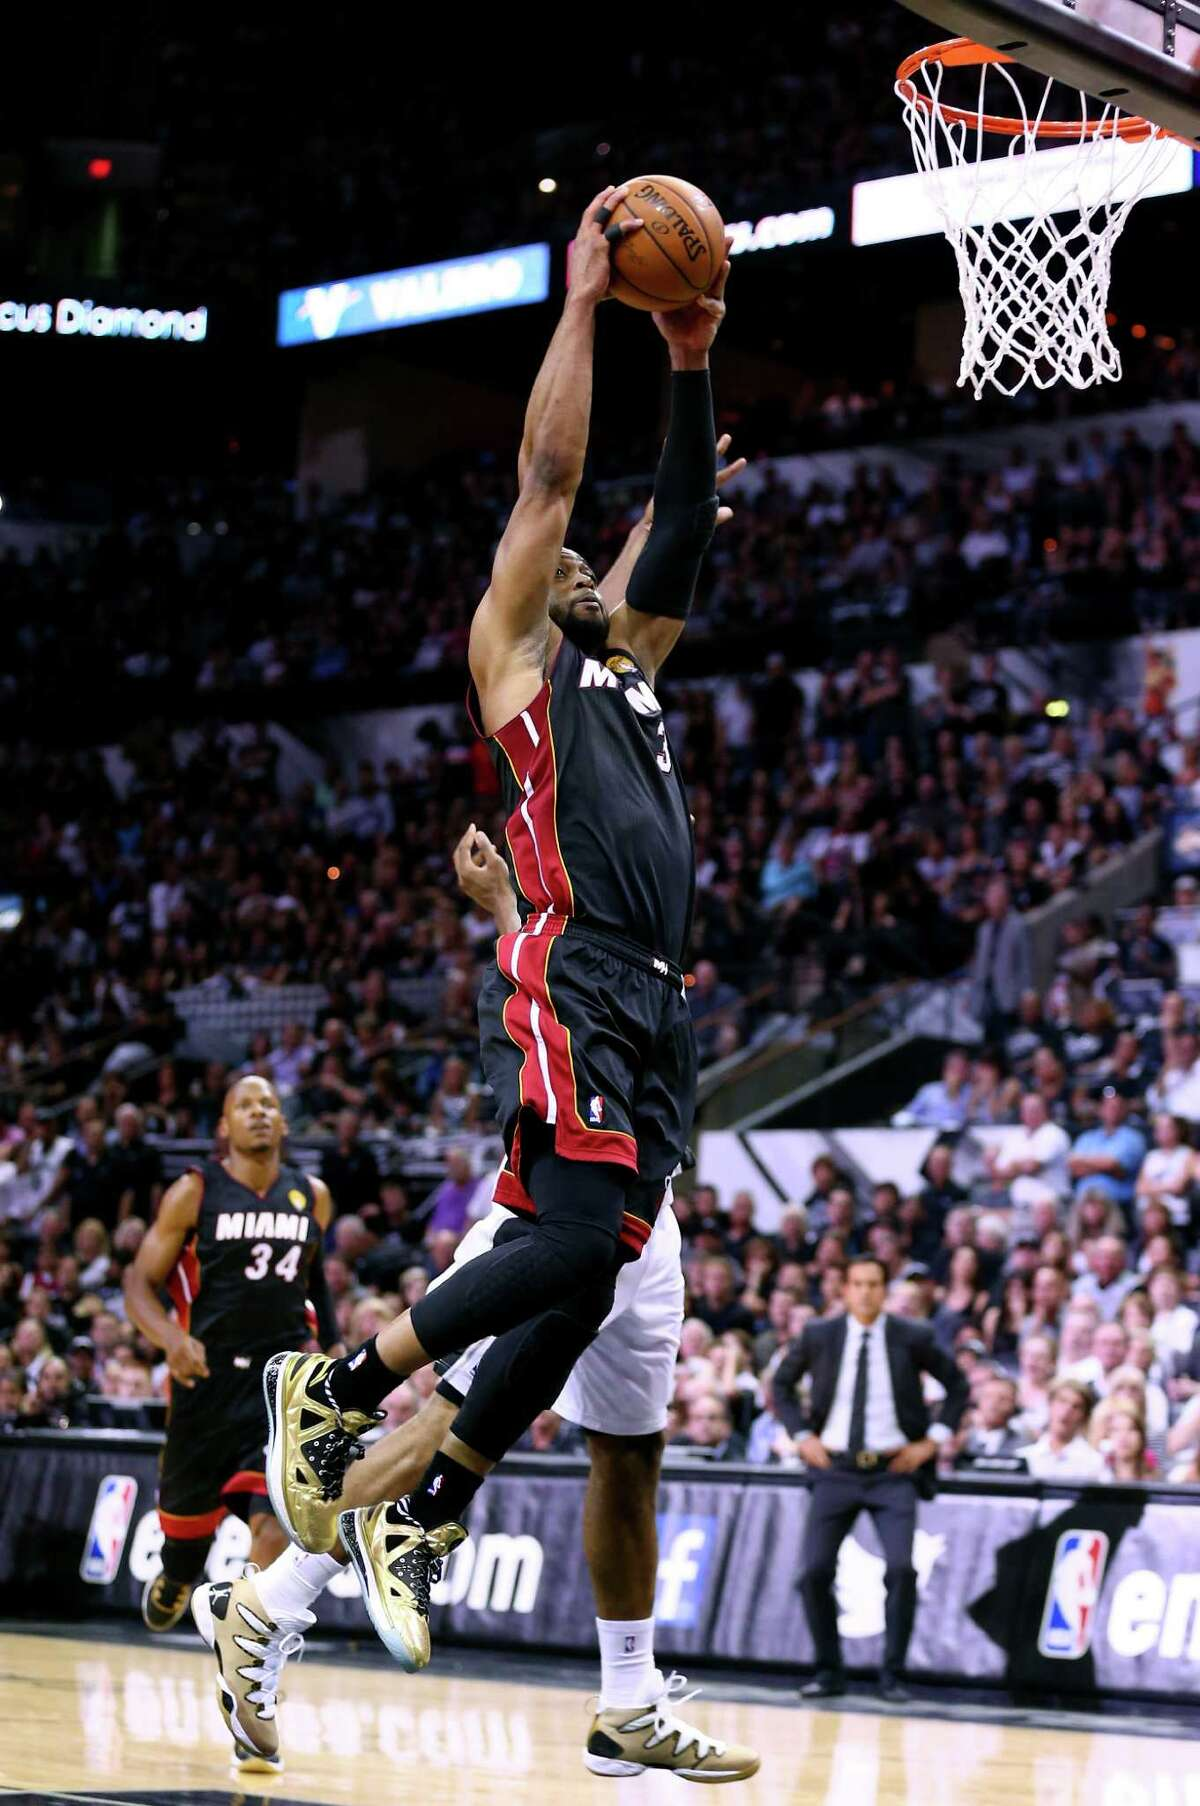 SAN ANTONIO, TX - JUNE 08: Dwyane Wade #3 of the Miami Heat goes to the basket agianst the San Antonio Spurs during Game Two of the 2014 NBA Finals at the AT&T Center on June 8, 2014 in San Antonio, Texas. NOTE TO USER: User expressly acknowledges and agrees that, by downloading and or using this photograph, User is consenting to the terms and conditions of the Getty Images License Agreement.